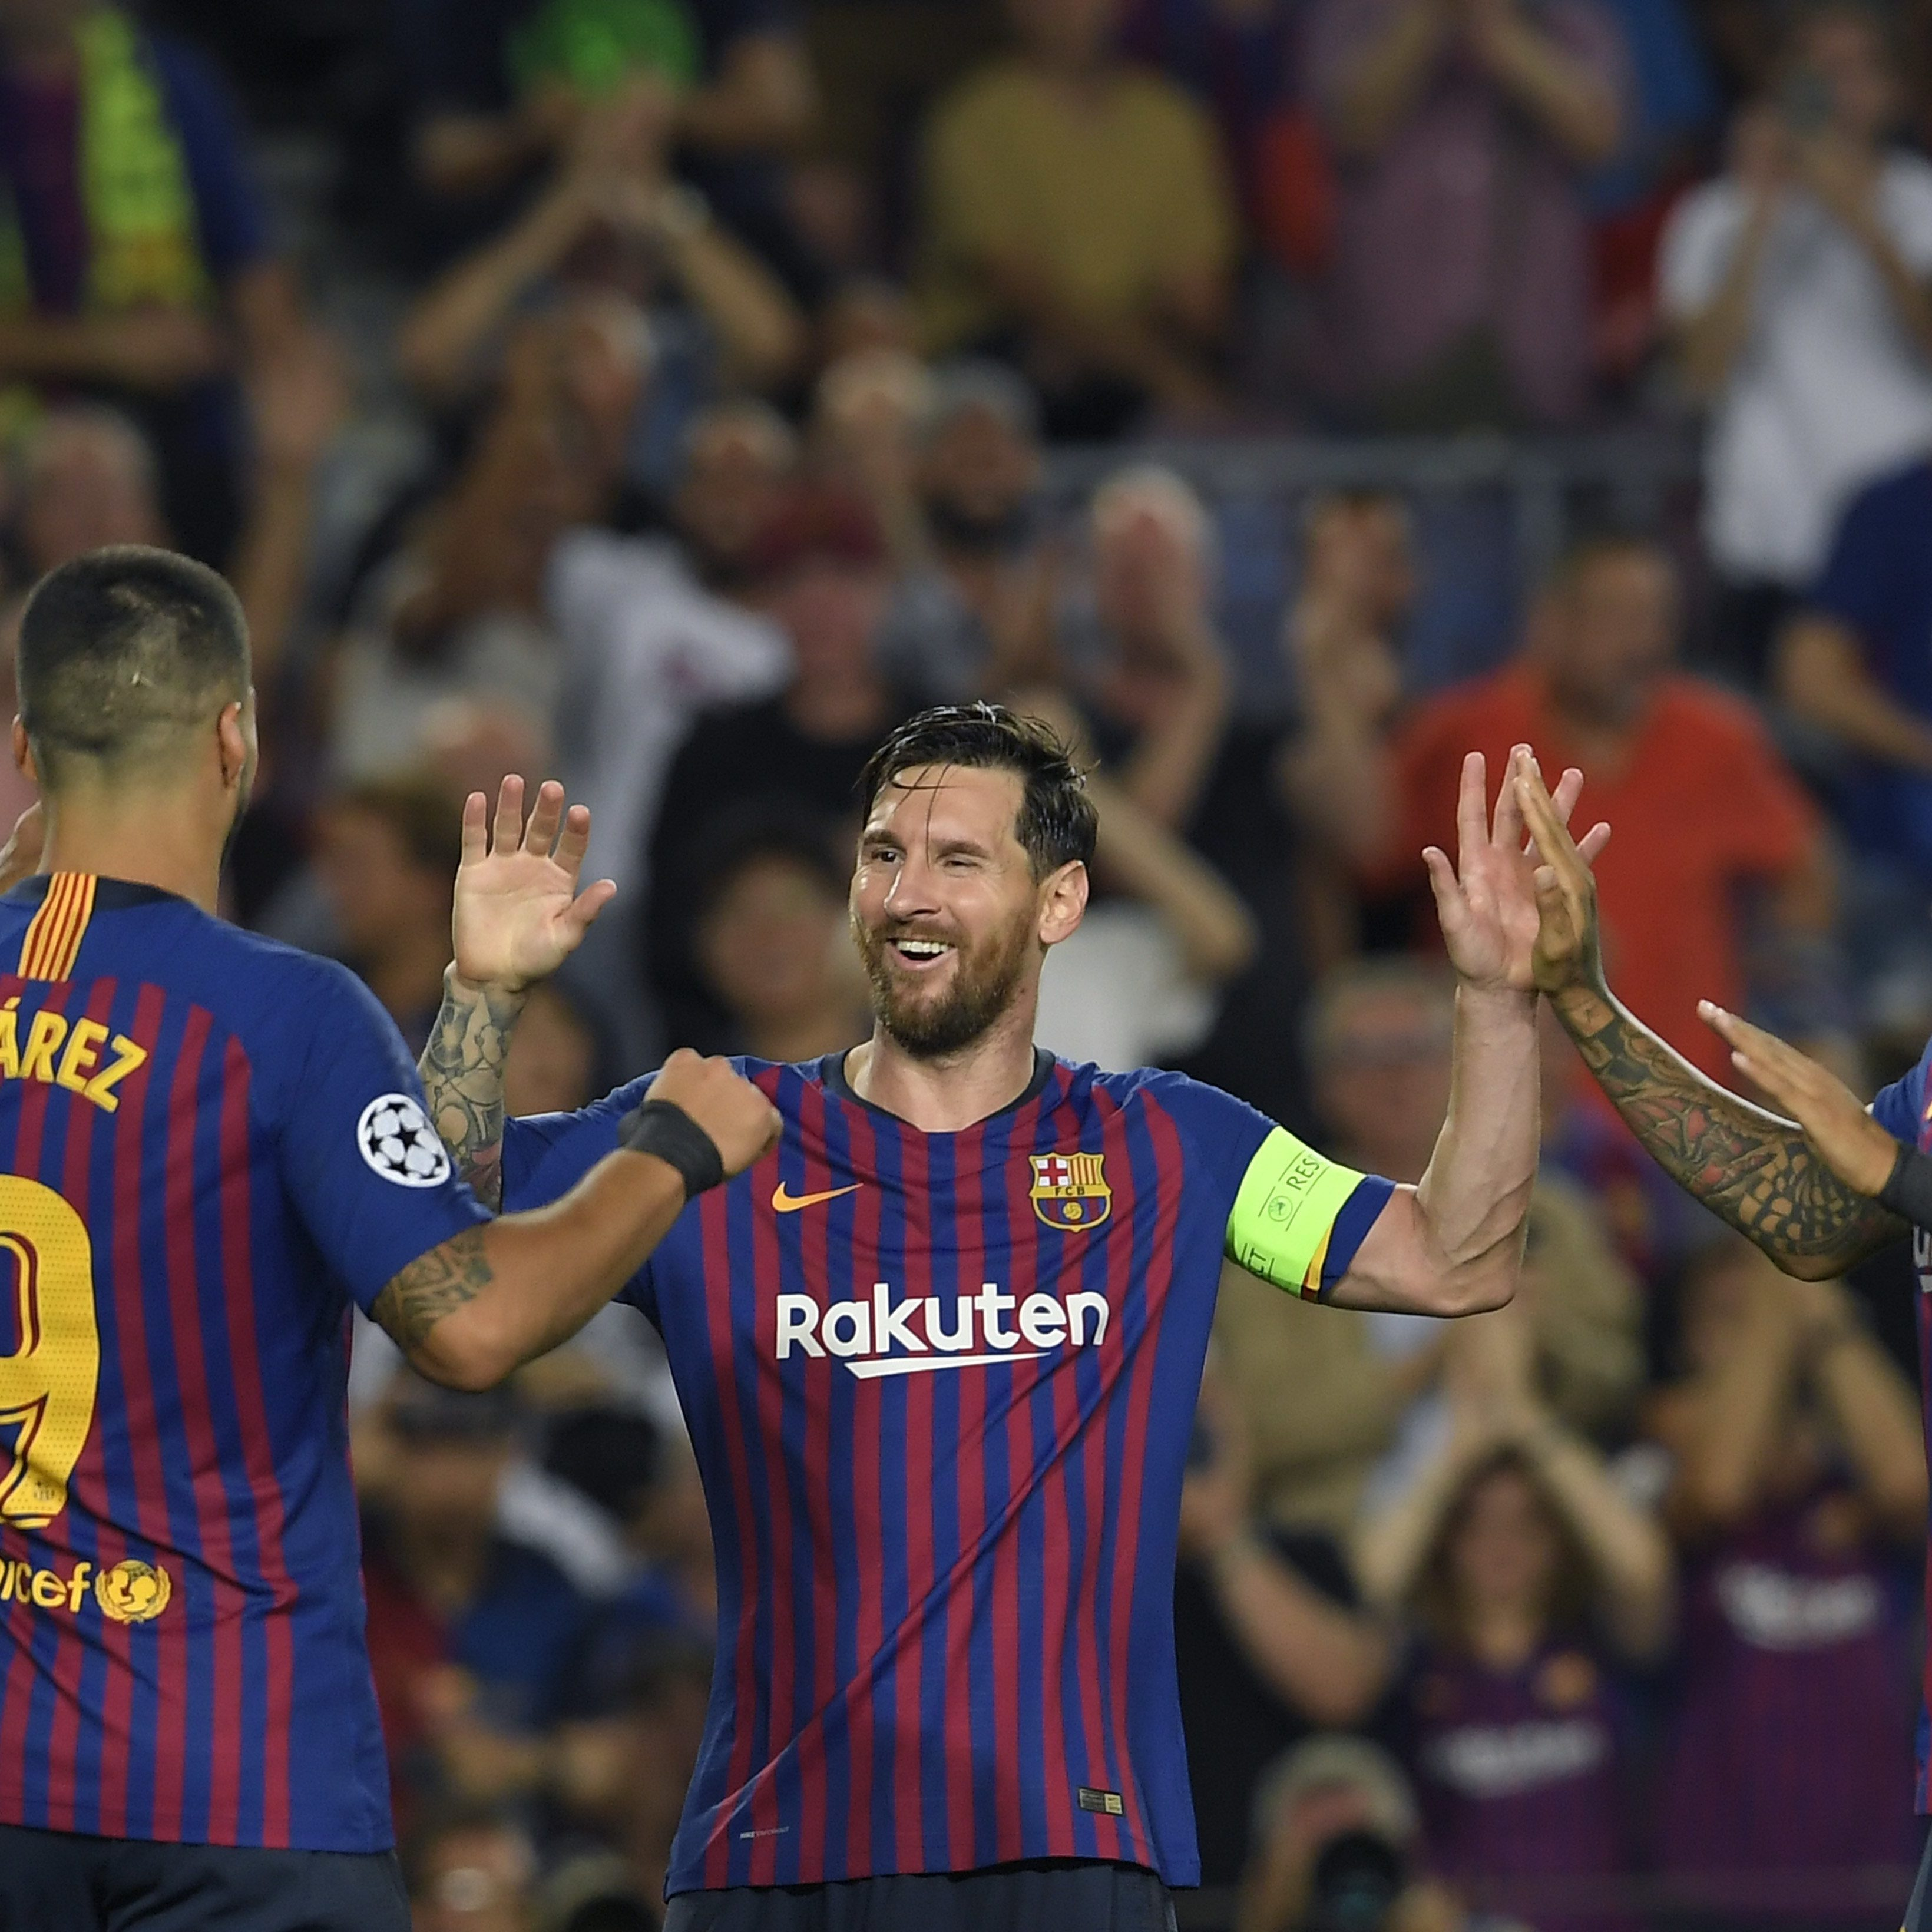 Barcelona's Argentinian forward Lionel Messi (C) celebrates with Barcelona's Uruguayan forward Luis Suarez (L) and Barcelona's Chilean midfielder Arturo Vidal after scoring his third goal during the UEFA Champions' League group B football match FC Barcelona against PSV Eindhoven at the Camp Nou stadium in Barcelona on September 18, 2018. / AFP PHOTO / LLUIS GENE